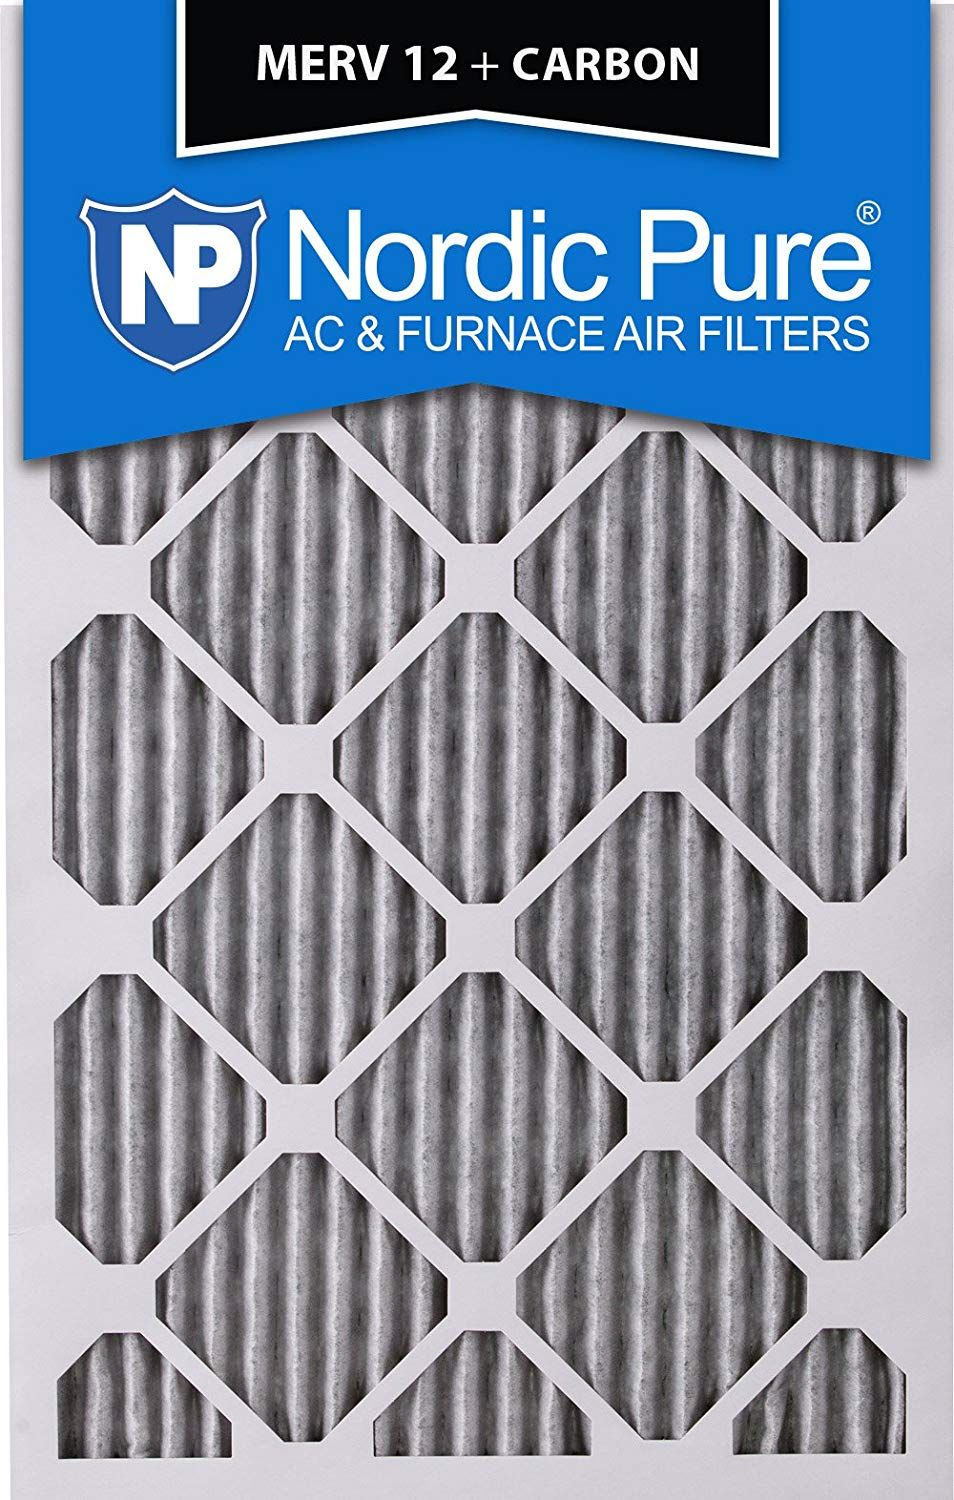 Nordic Pure 20x25x1 MERV 12 Pleated Plus Carbon AC Furnace